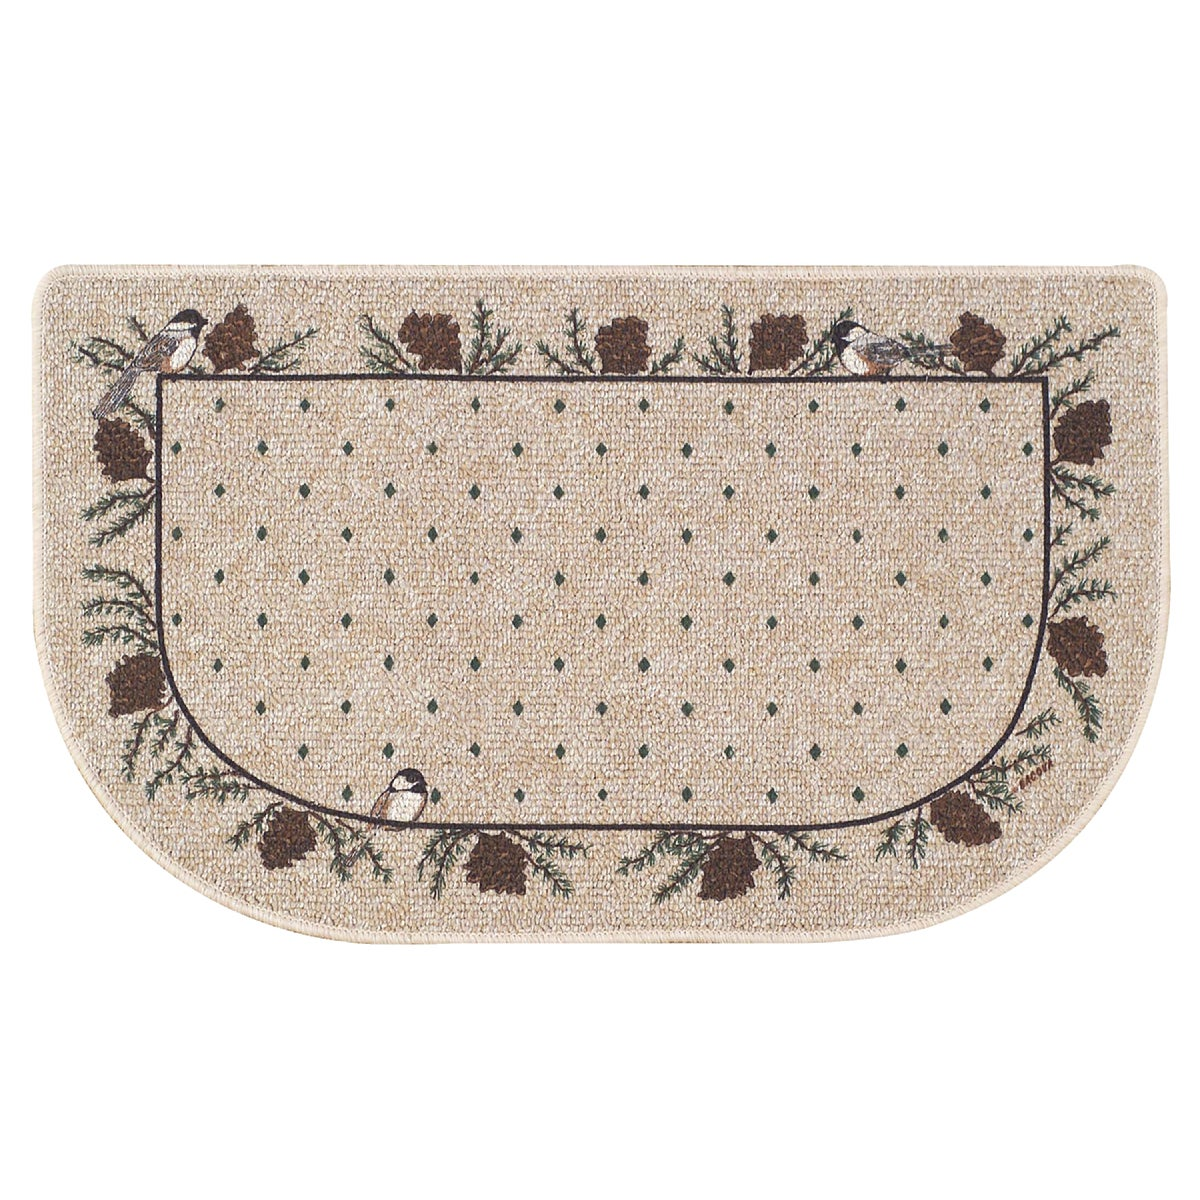 23-1/2X40 CHK HEARTH RUG - 01837 by Bacova Guild Ltd